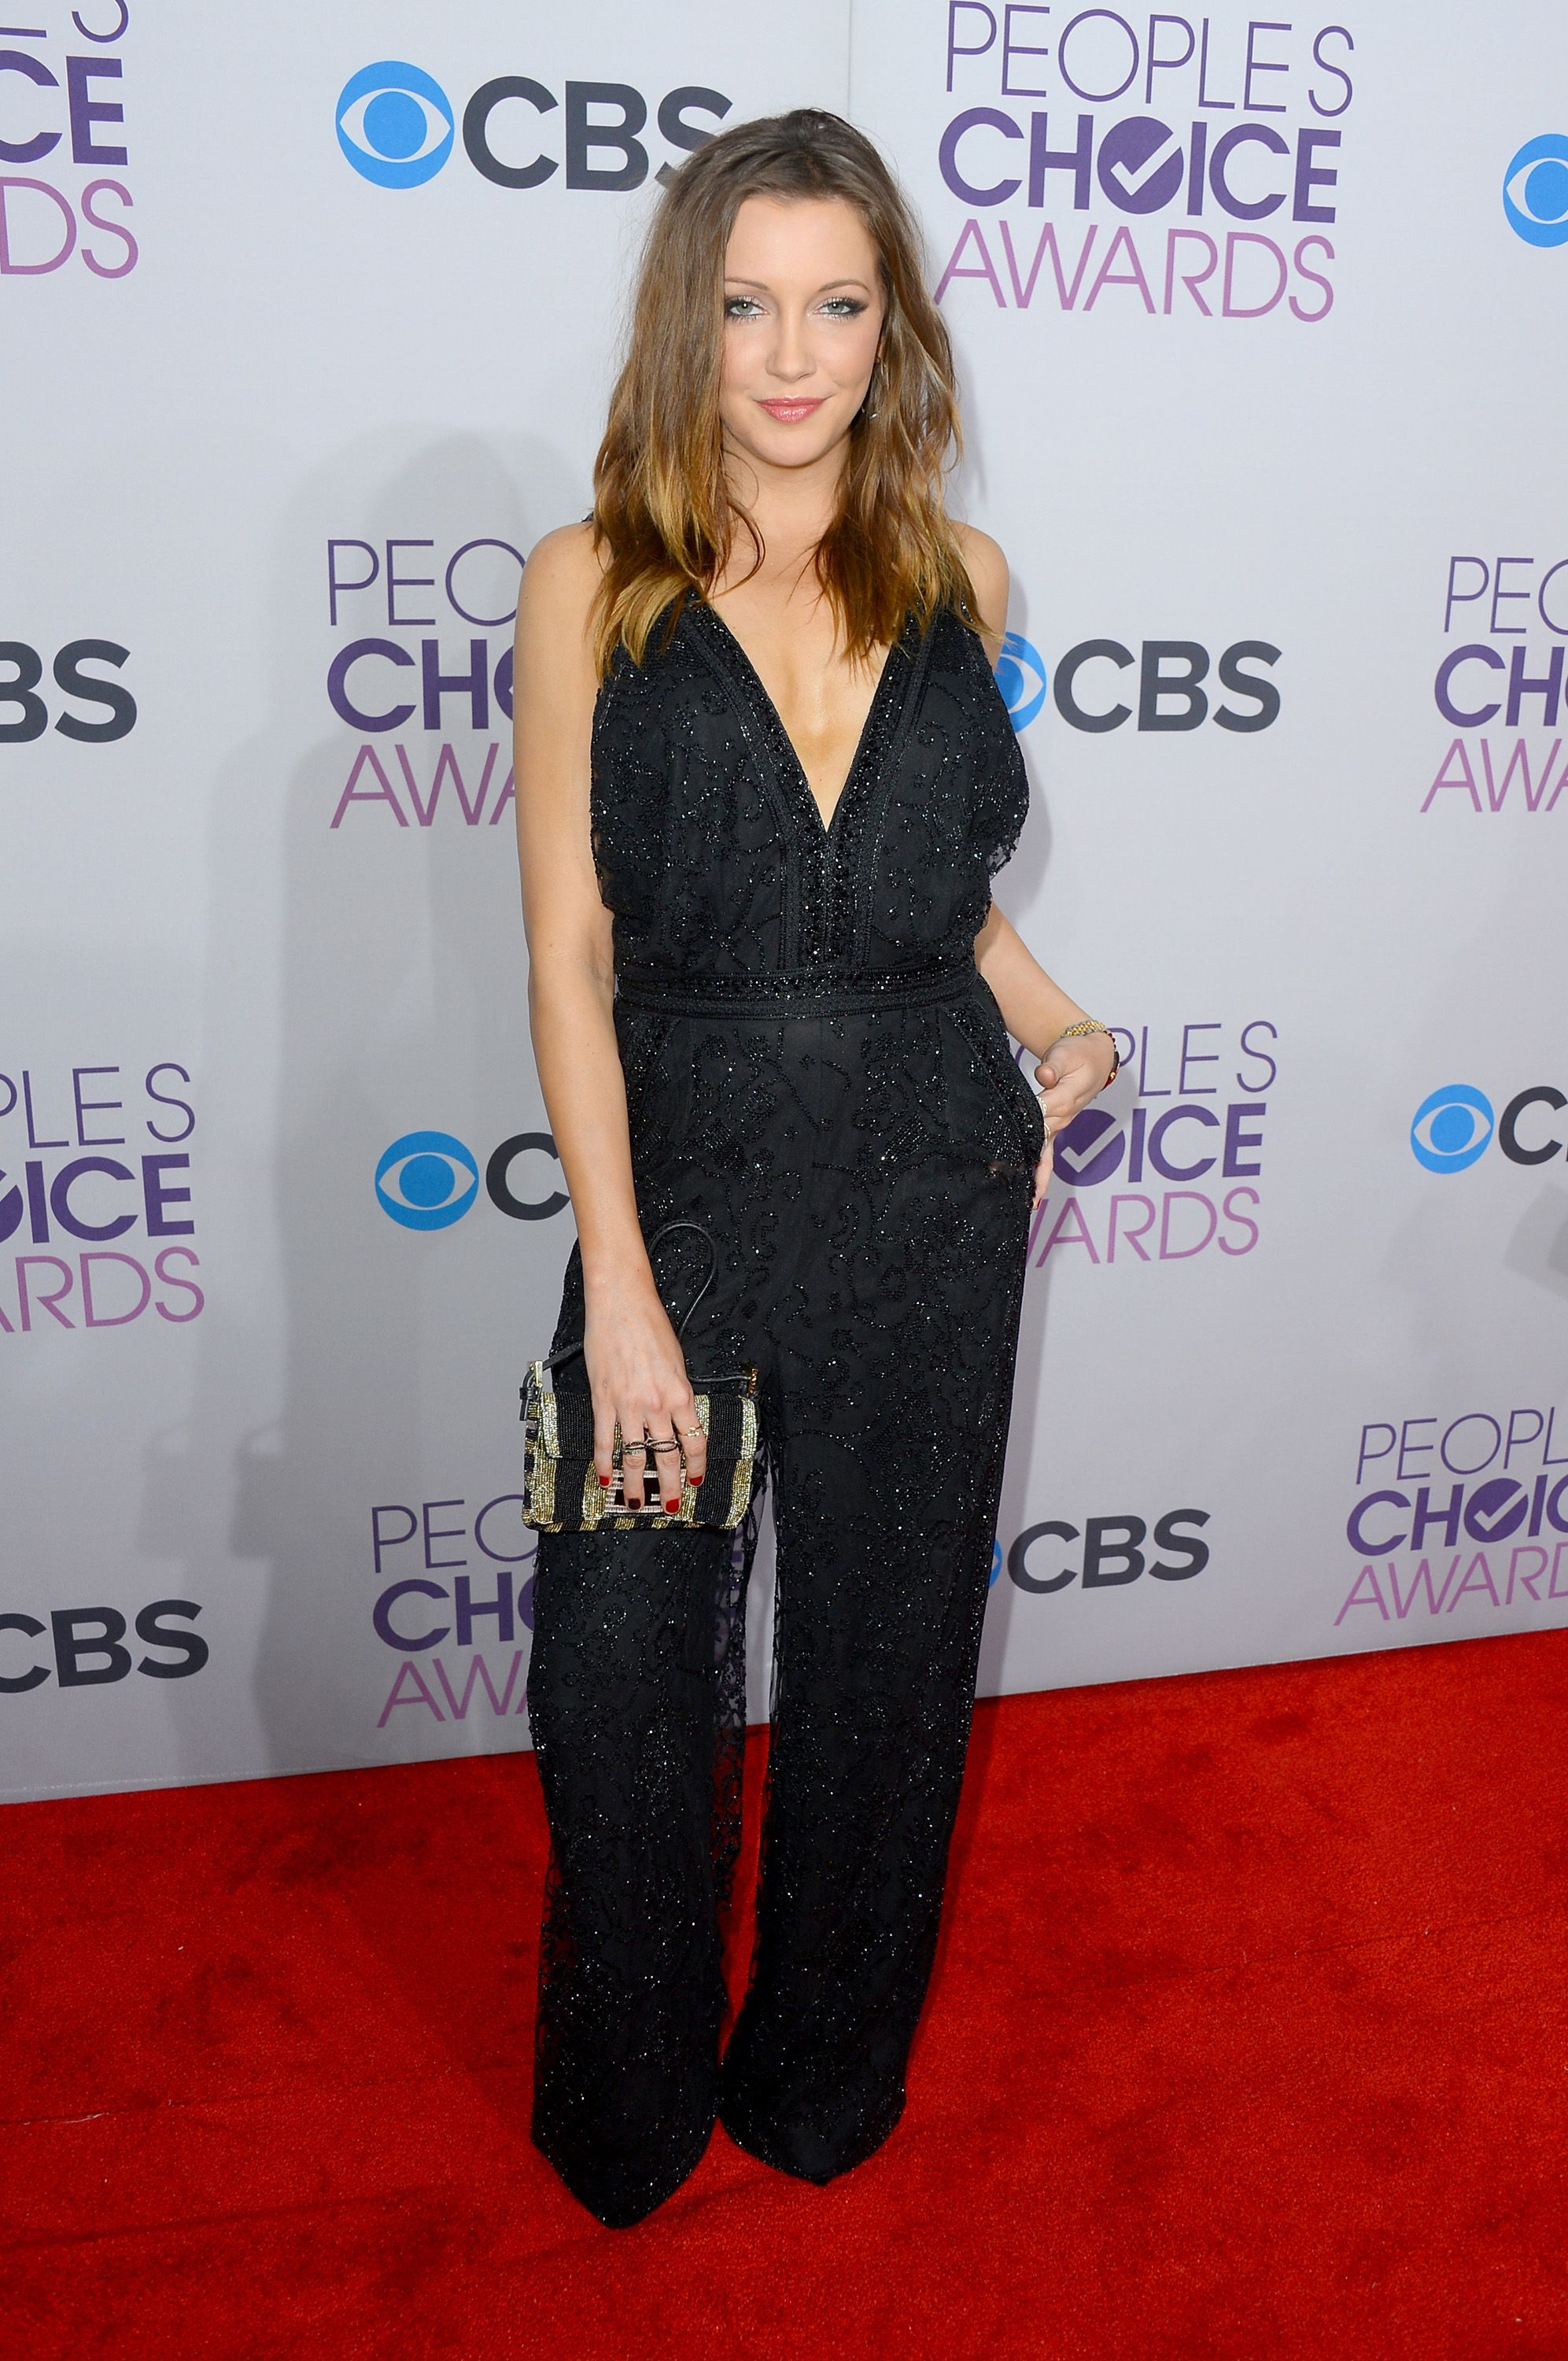 Katie Cassidy in a jumpsuit at the red carpet #PCA